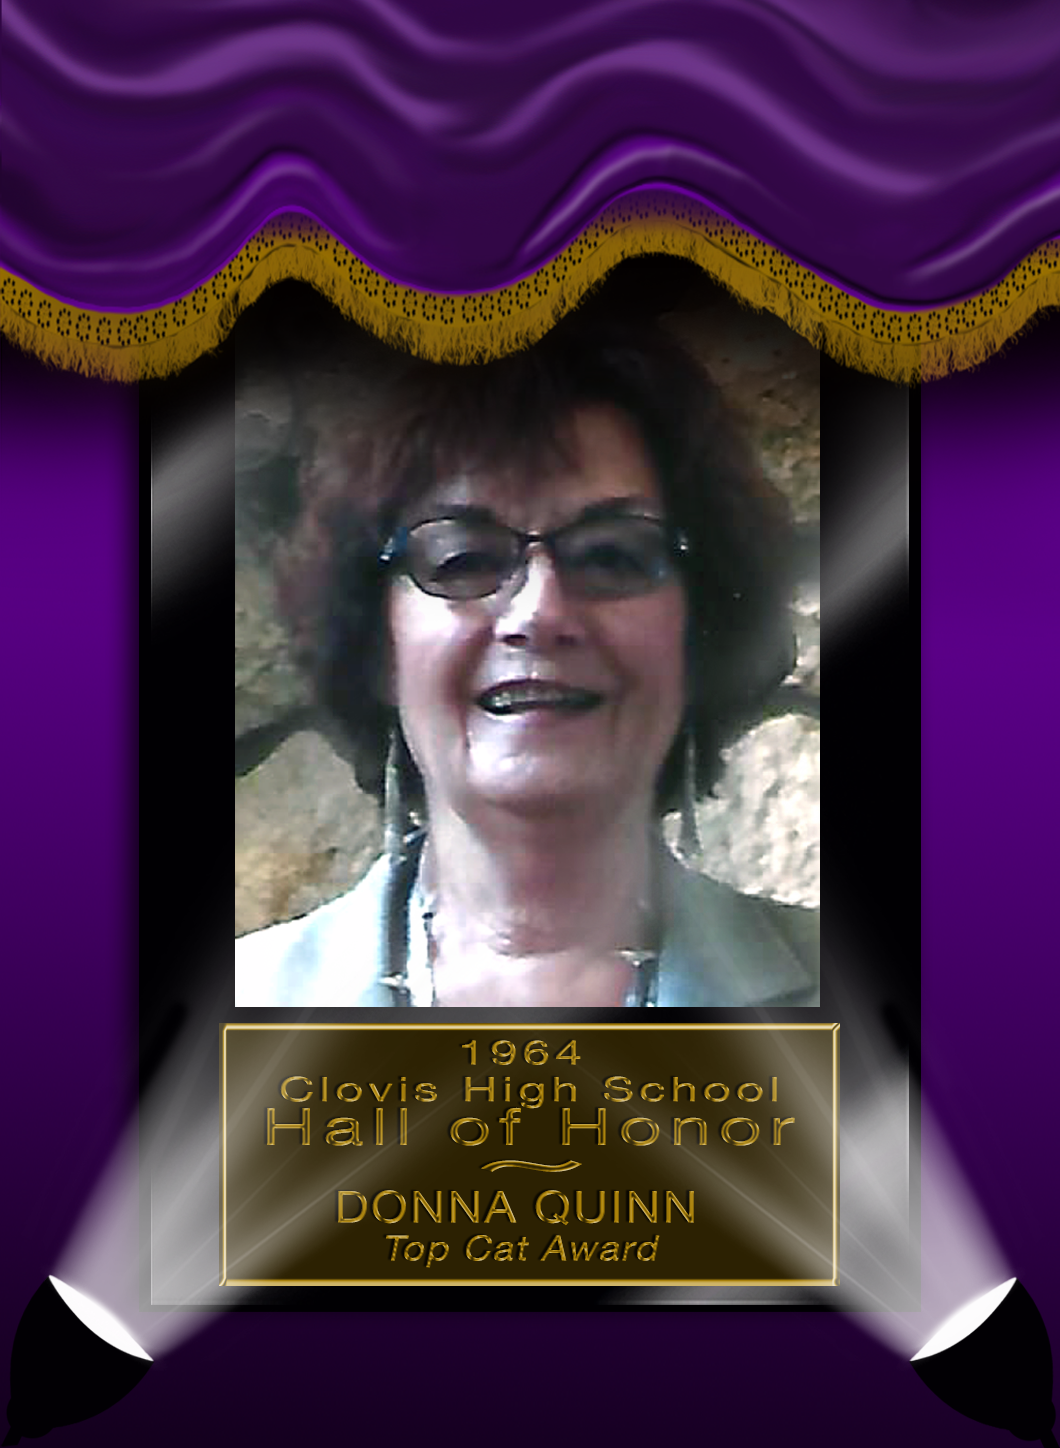 Image of Donna Quinn